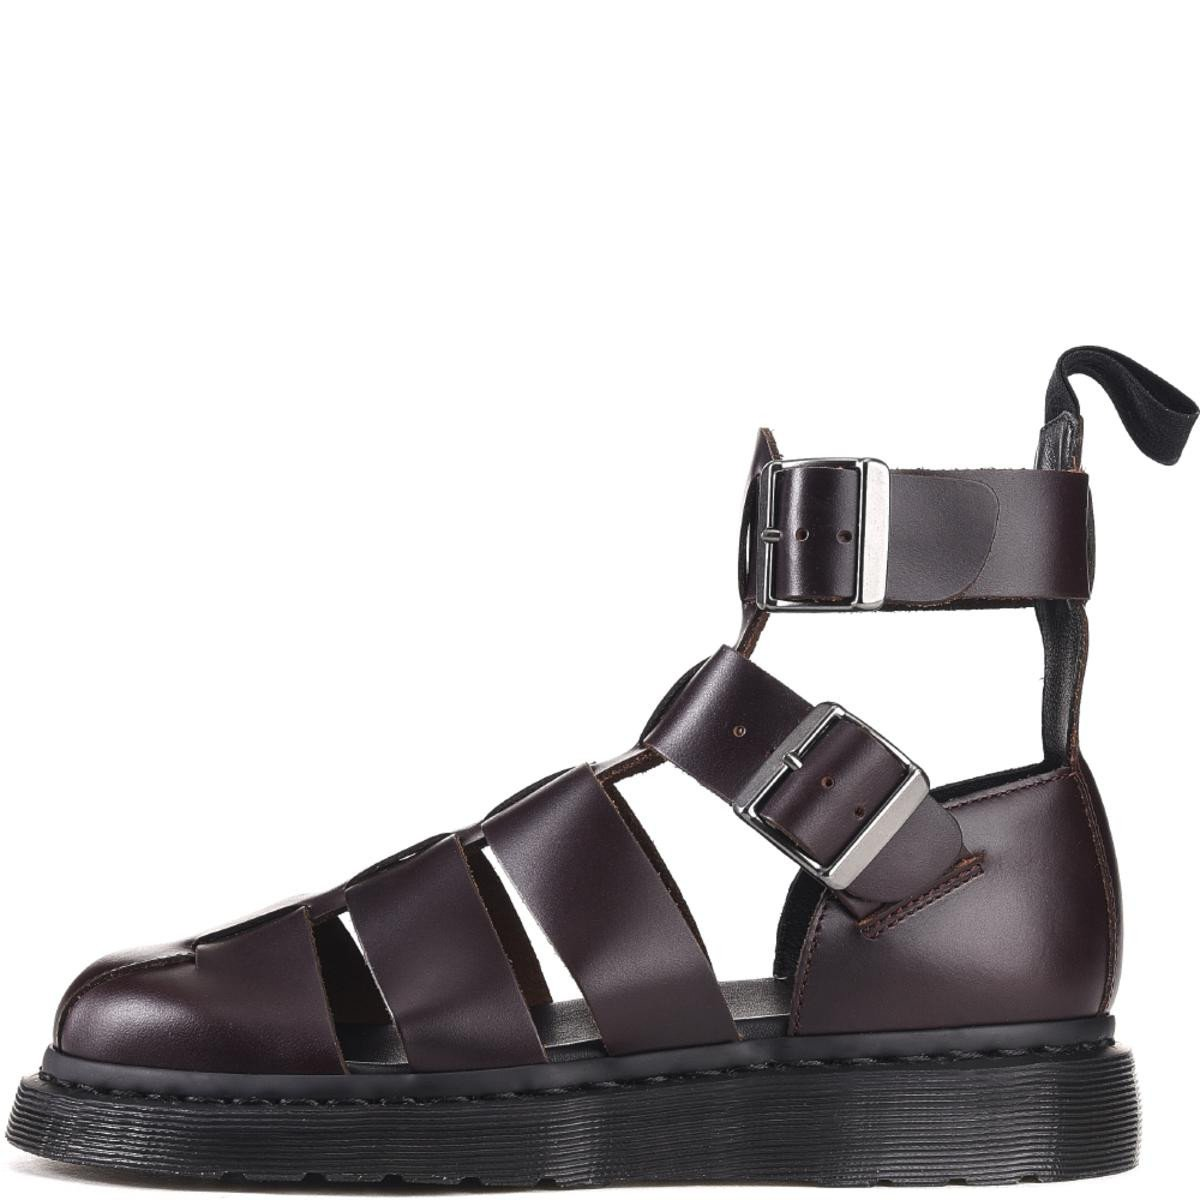 Dr. Martens for Women: Geraldo Brando Sandals